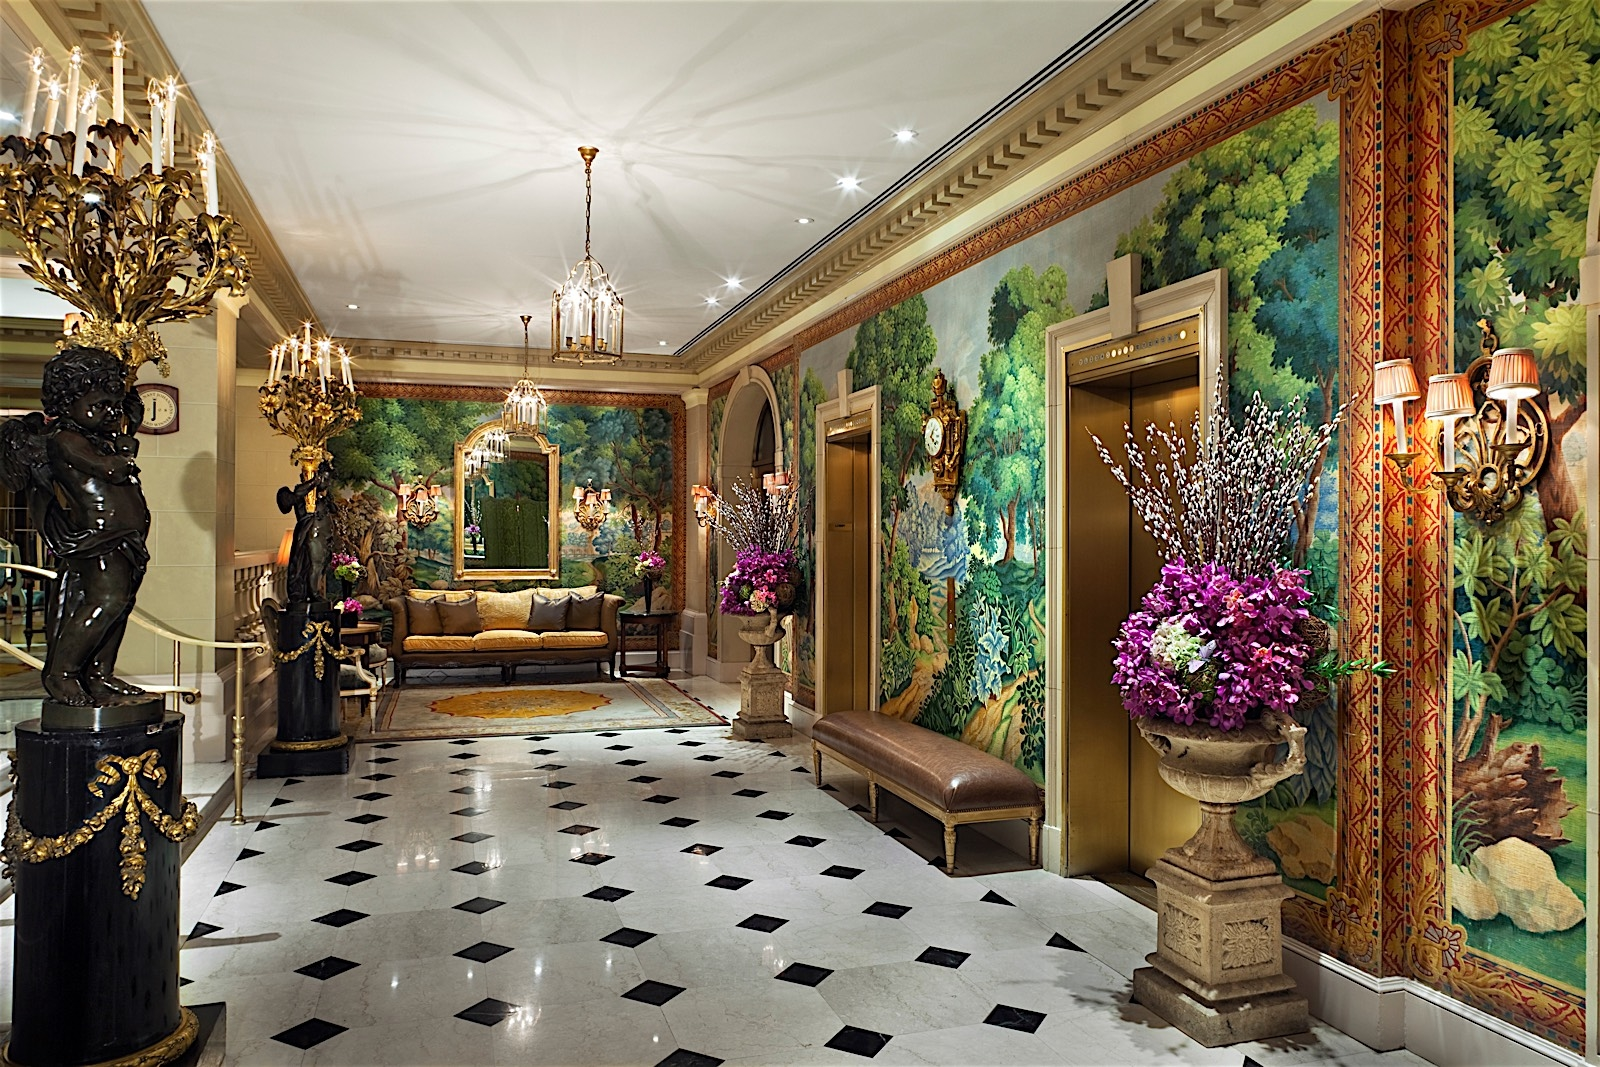 Hotel plaza athenee coupons near me in new york 8coupons for Modern hotels near me